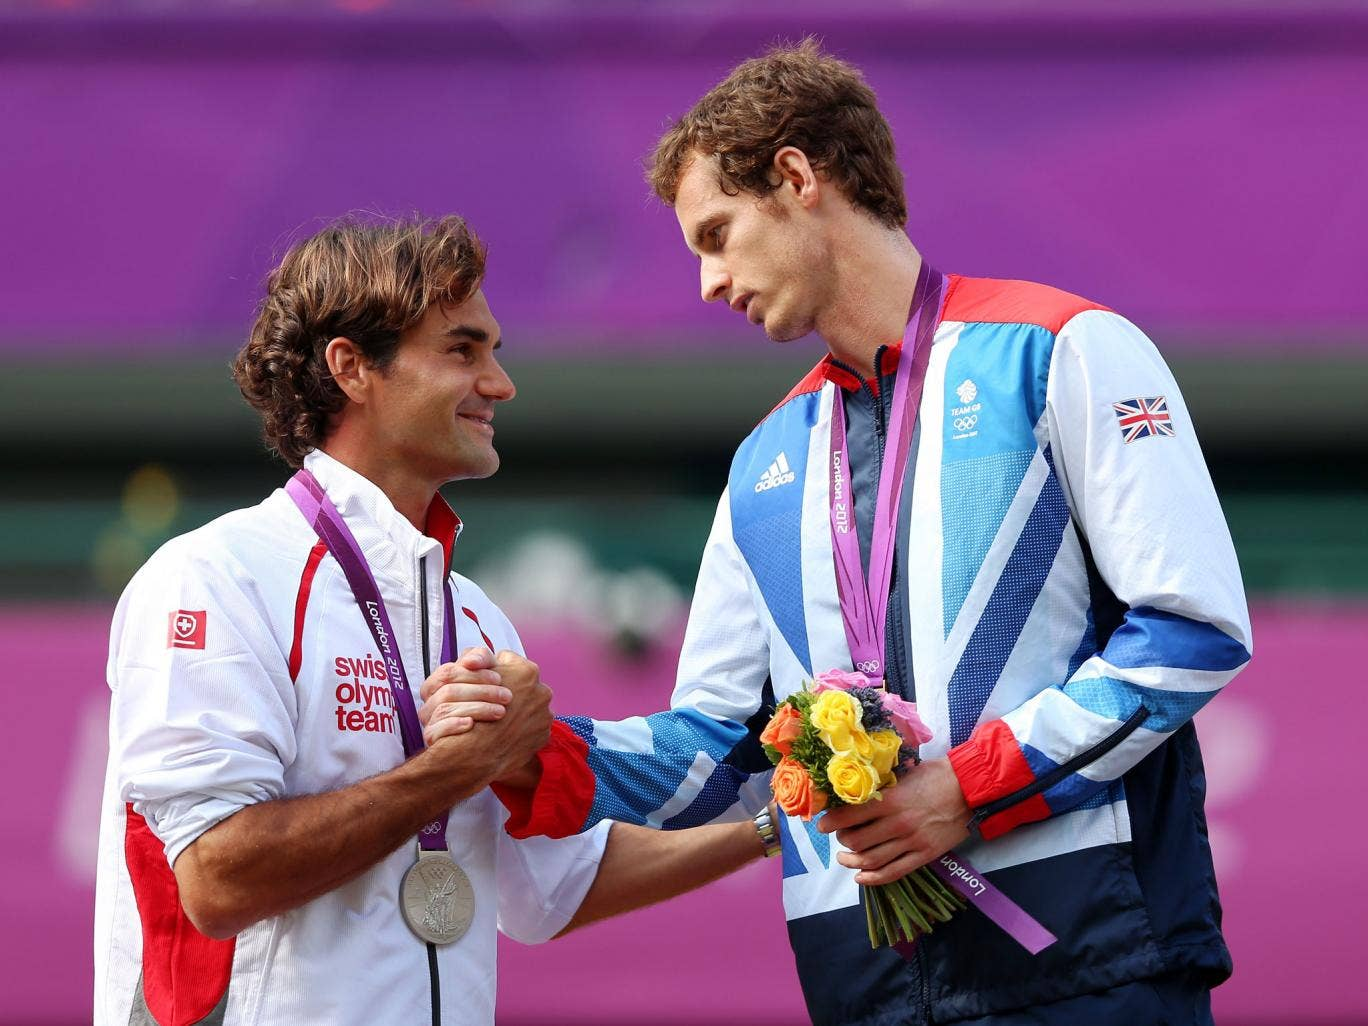 The Olympic final that Murray won last year